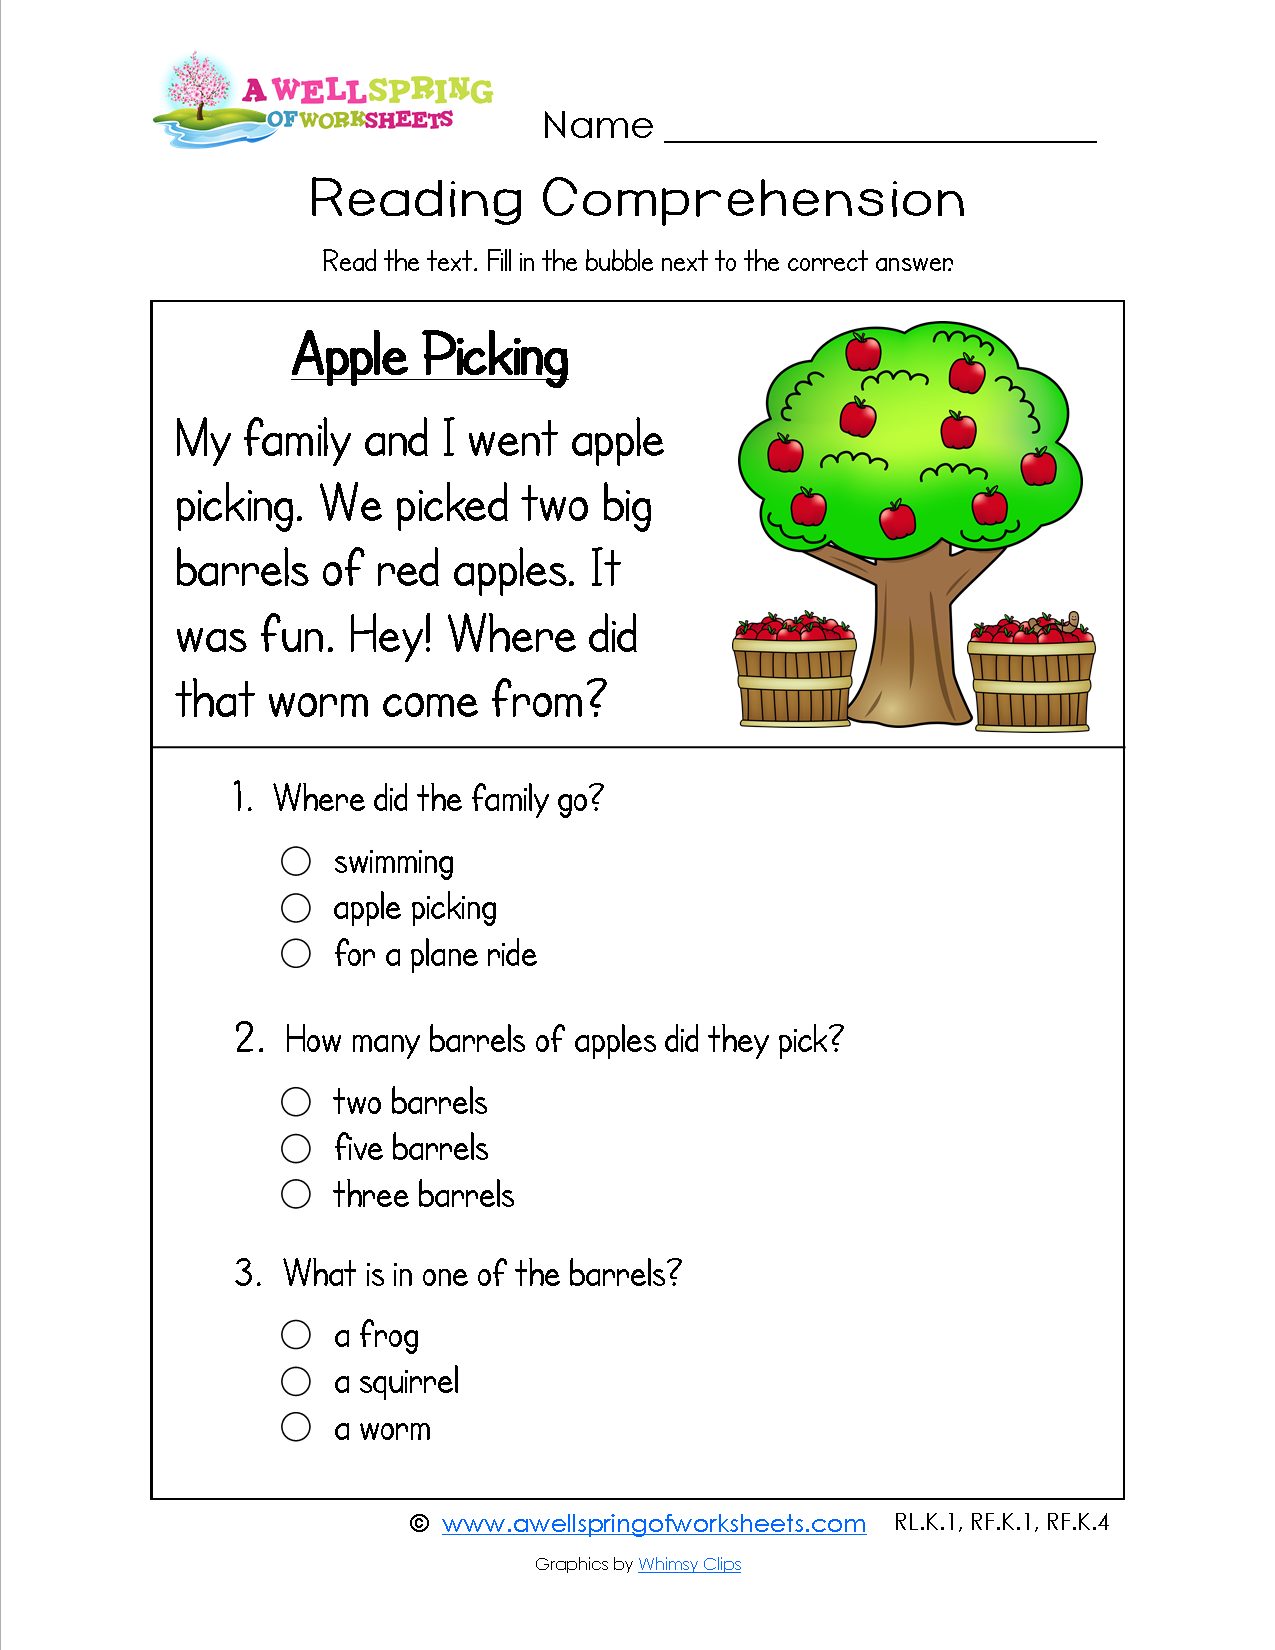 Worksheets Sentence Comprehension Worksheets reading for kindergarten a comprehension worksheet about picking apples it includes four